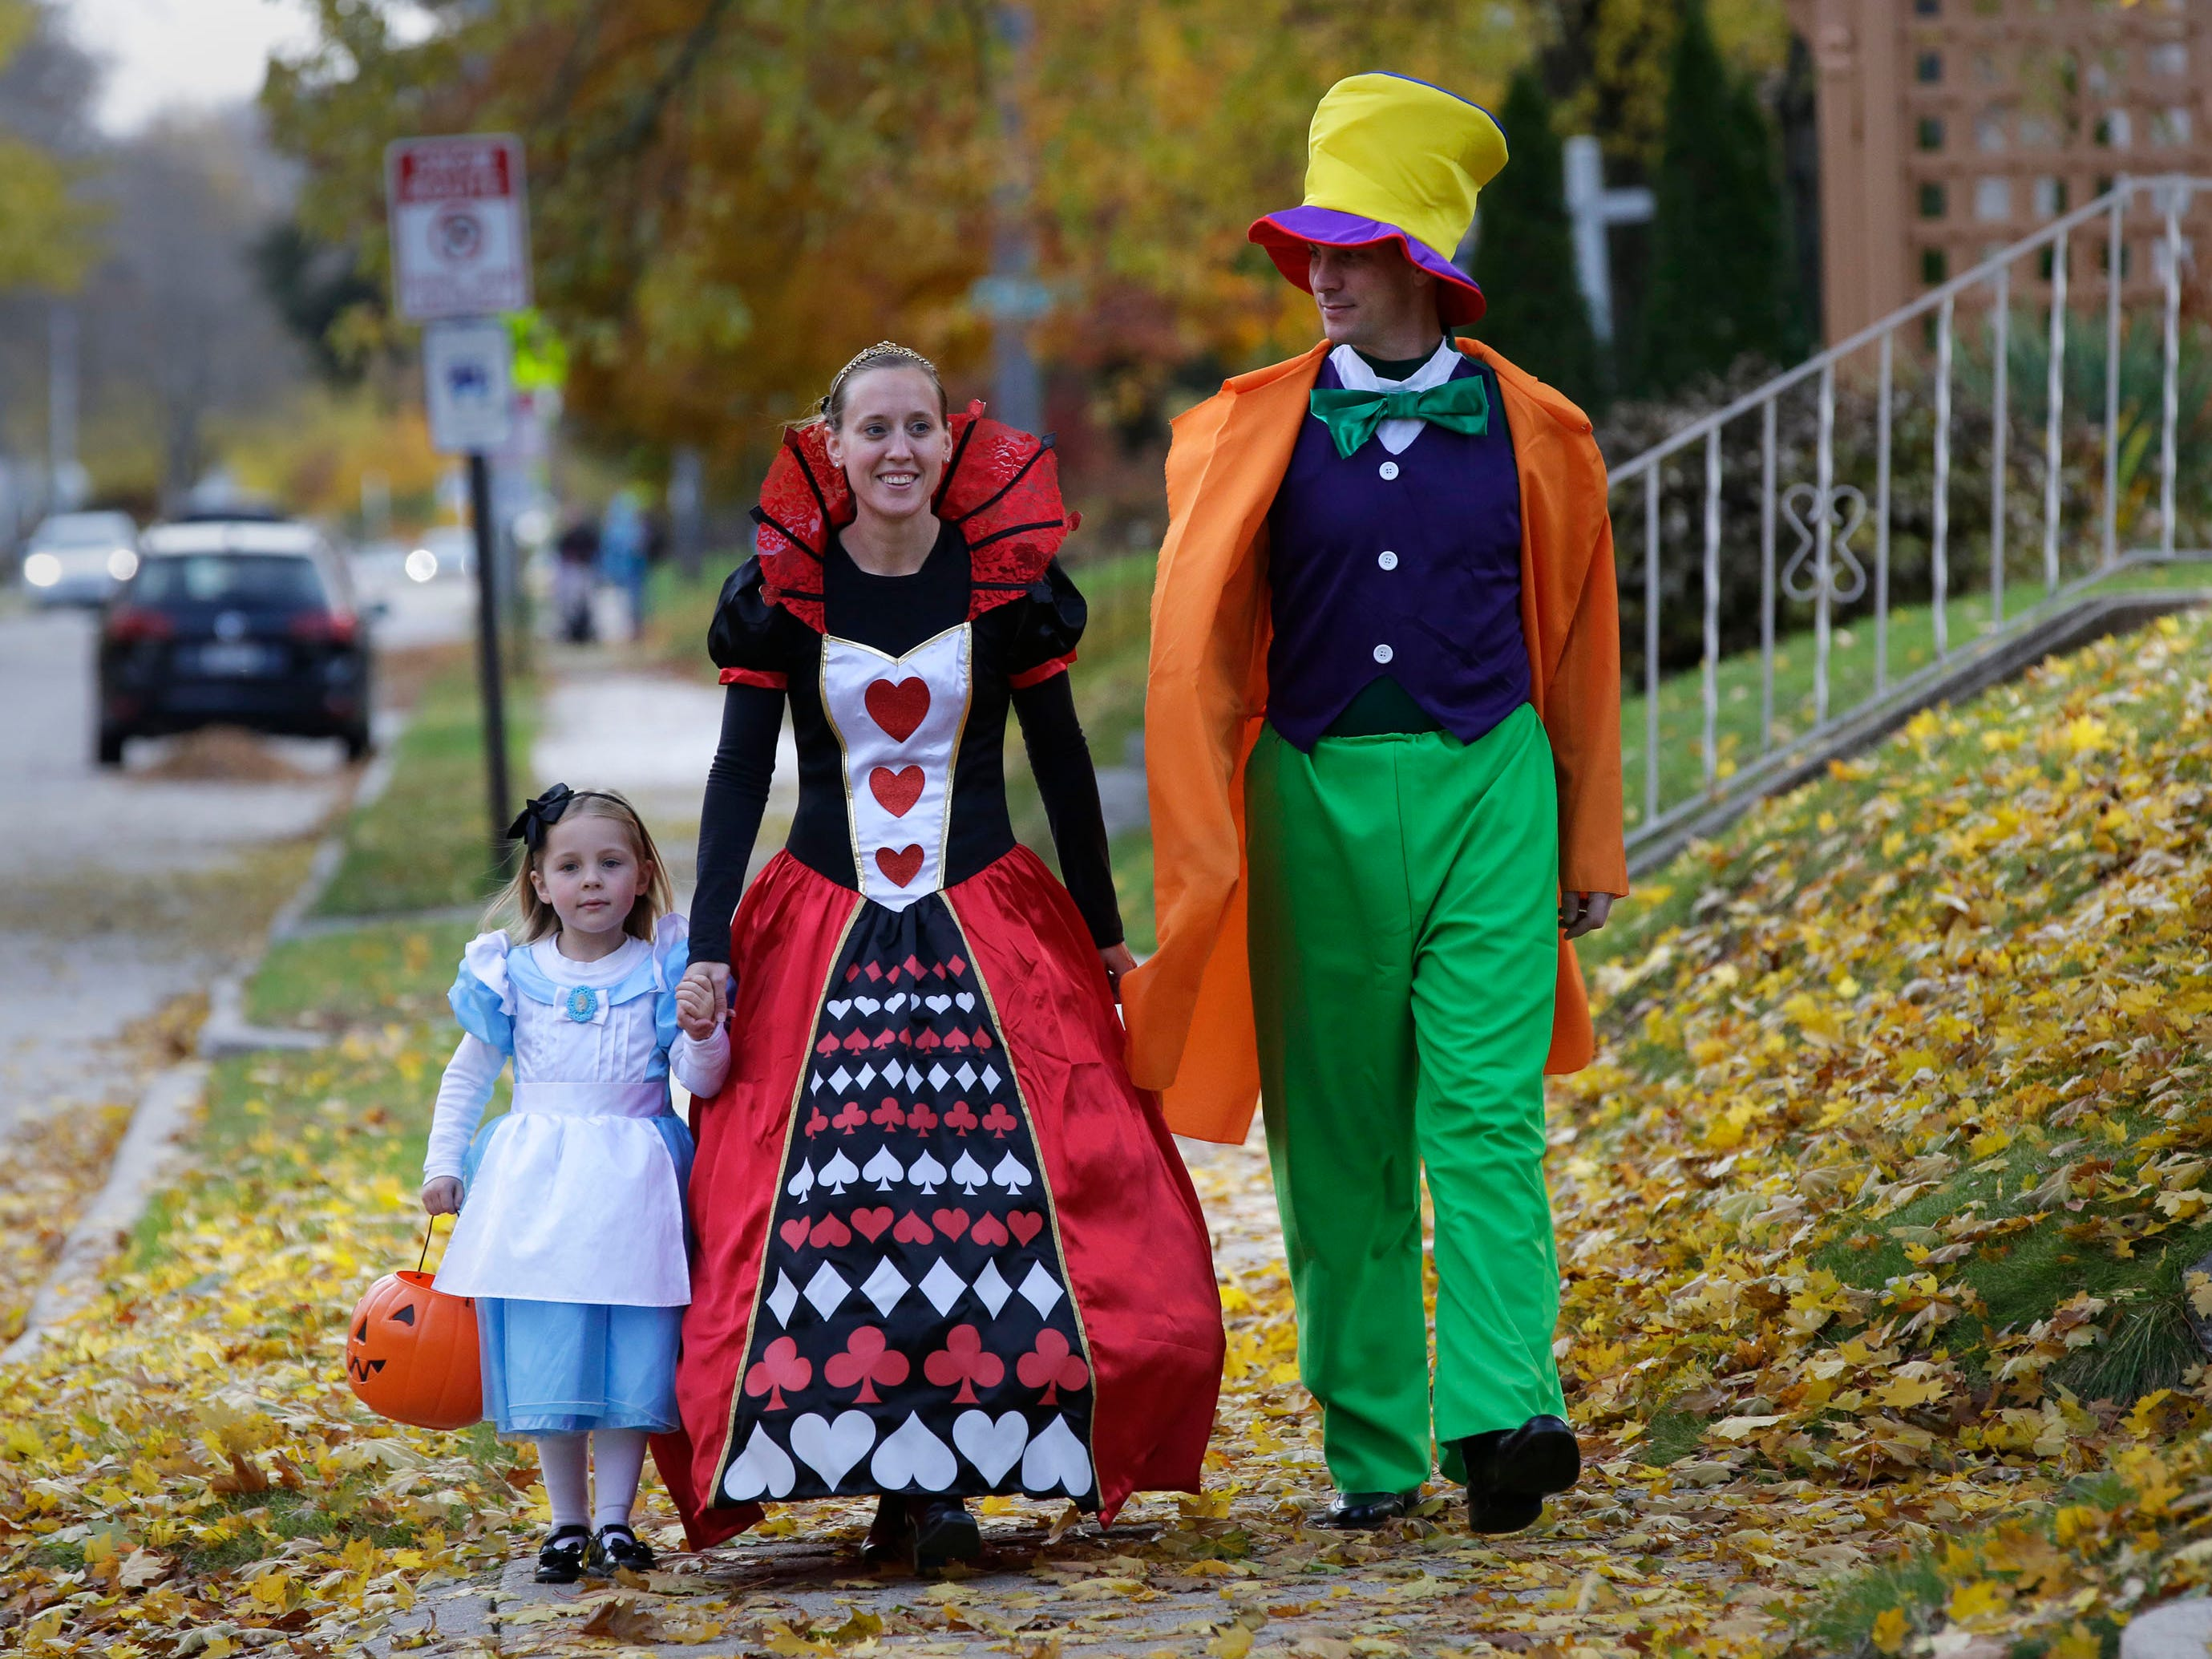 "Audrey Wiltzius, 5, walks with her parents Tayna and Robert dressed as characters from ""Alice in Wonderland"" along North 6th Street during Trick or Treat, Wednesday, October 31, 2018, in Sheboygan, Wis."